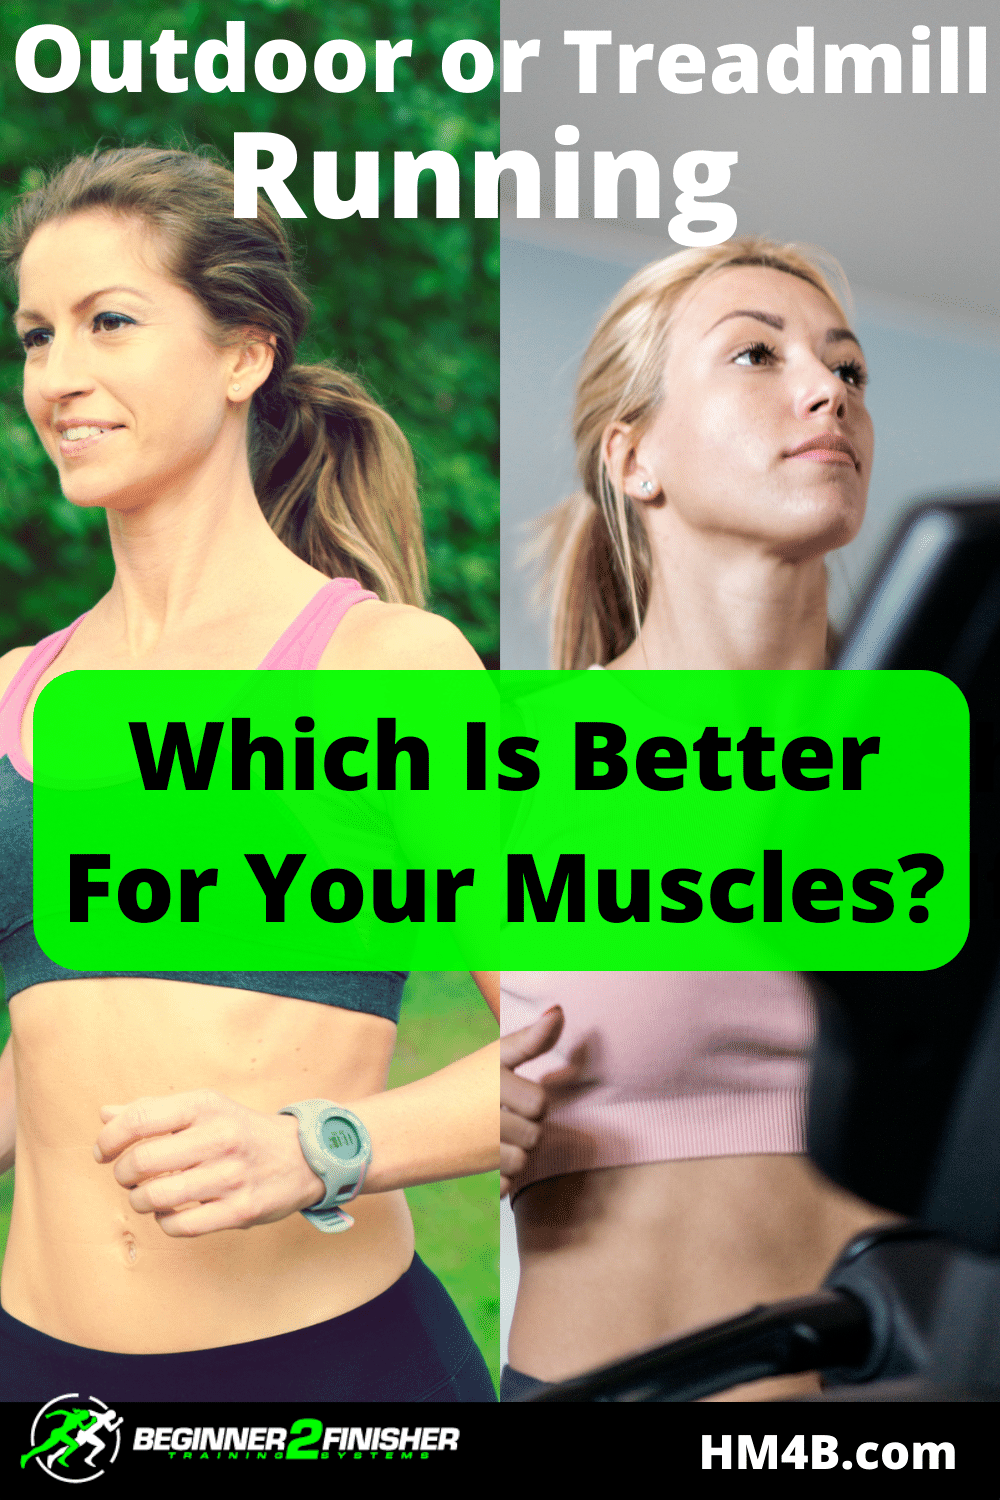 Treadmill Vs Outdoor Running - Which Is Better For Your Muscles?